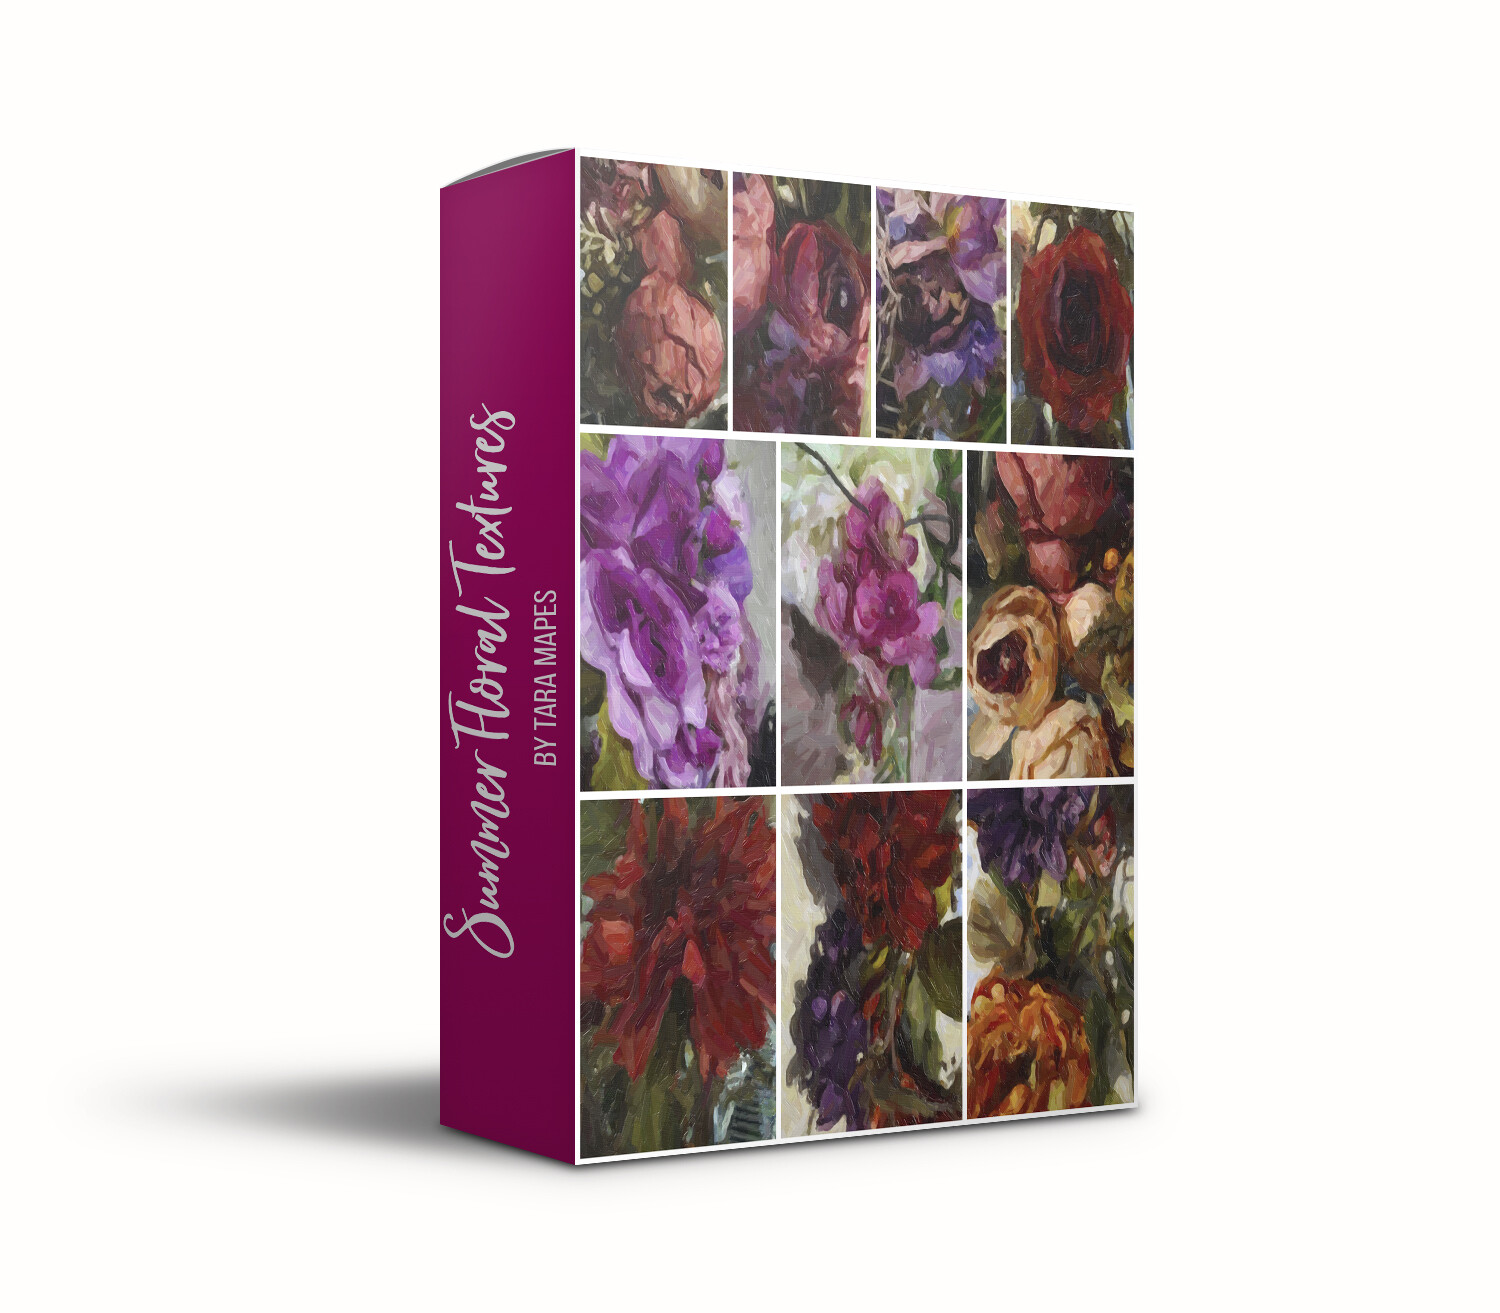 Summer Floral Collection 1 Fine Art 10 Texture Overlays - Oil Paint Floral Textures Photoshop Overlays by Tara Mapes